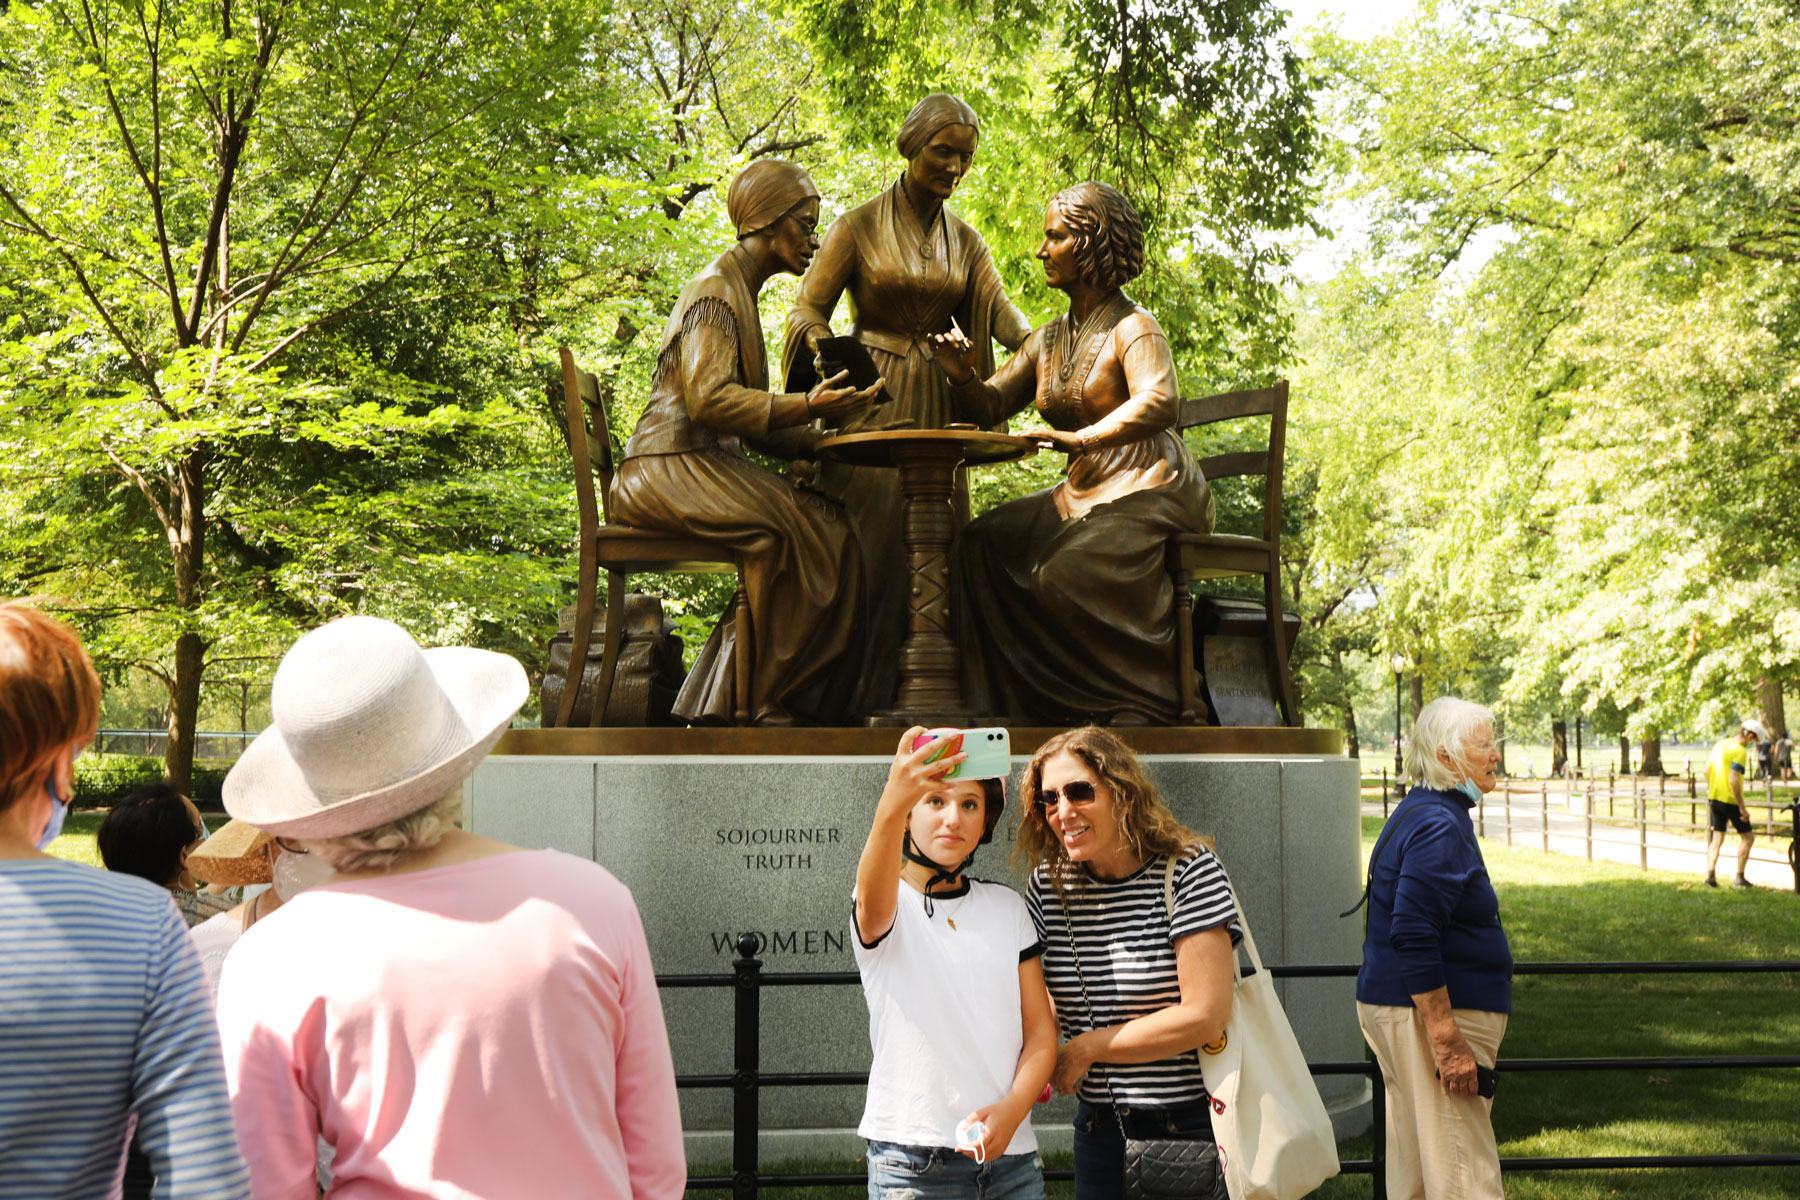 visitors photographing statue of women's rights pioneers Sojourner Truth, Susan B Anthony, and Elizabeth Cady Stanton in Central Park